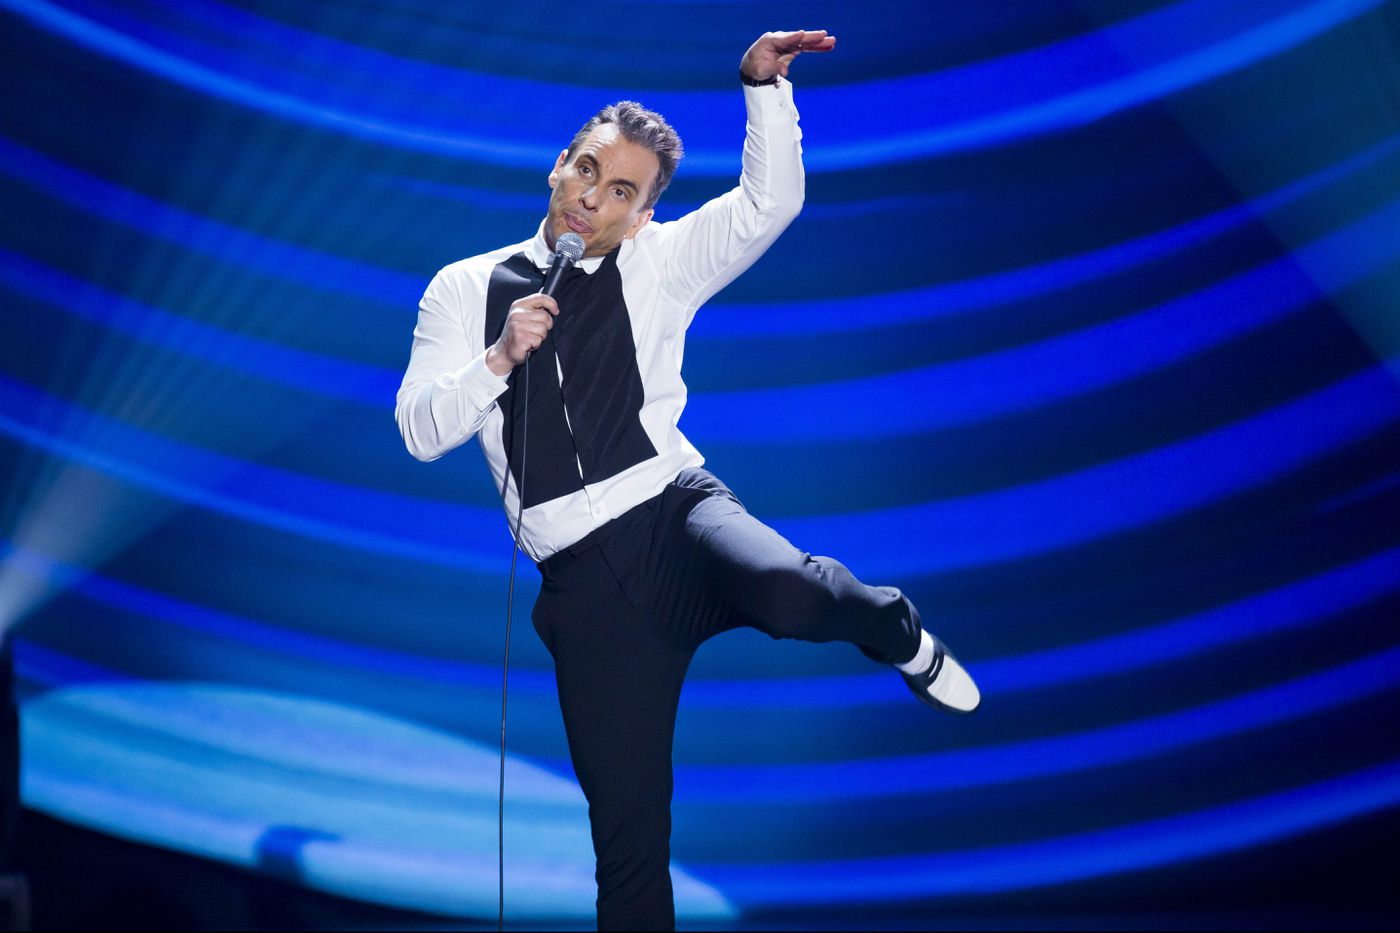 Comedian Sebastian Maniscalco is about to perform his biggest show ever in Philadelphia